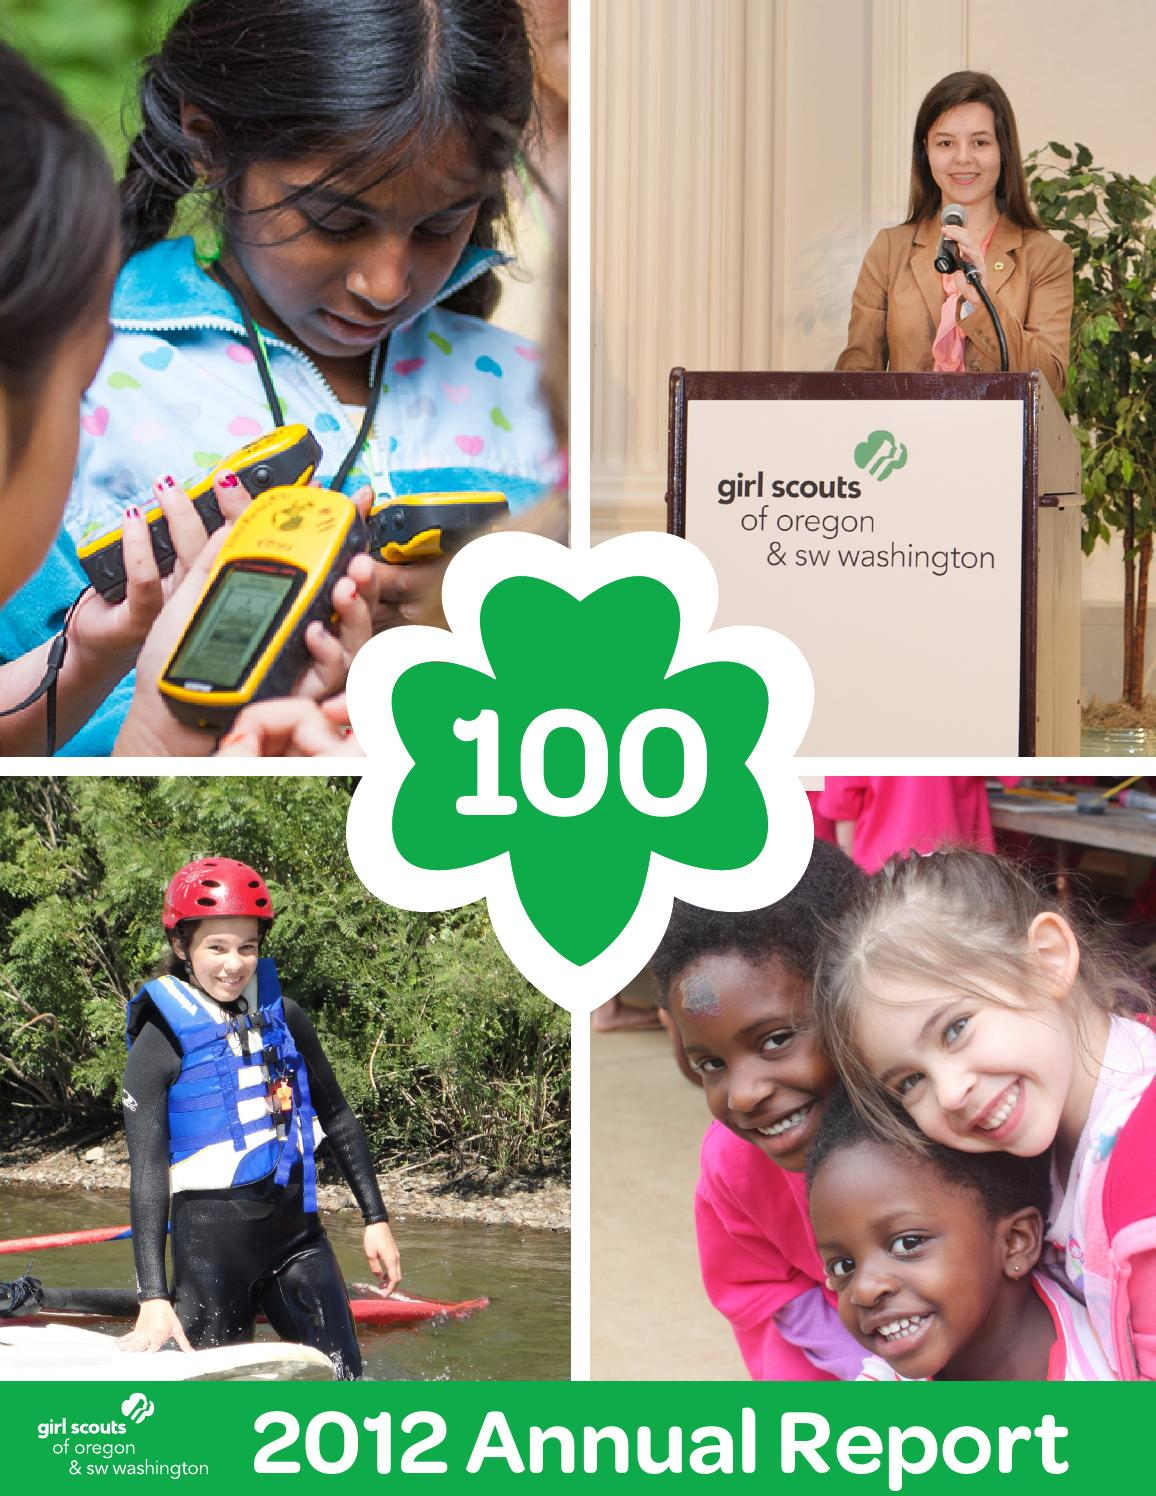 gsosw 2012 annual report by girl scouts of oregon and